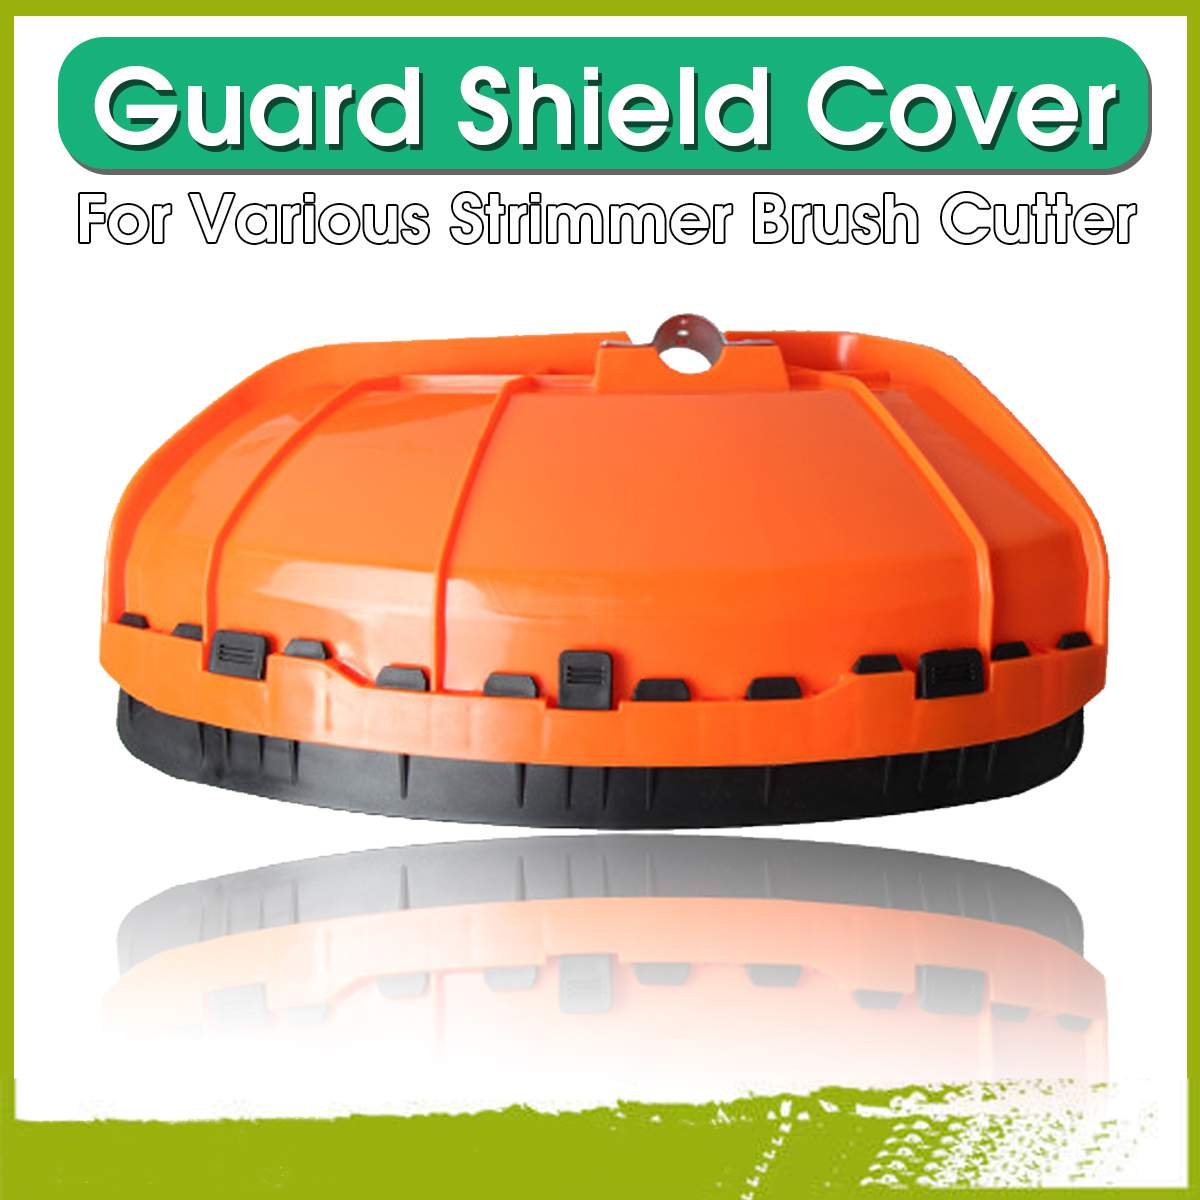 Grass Trimmer Brush Cutter Replacement Guard Shield Cover Blade Guard Strimmer Board with Connector Protection Cover